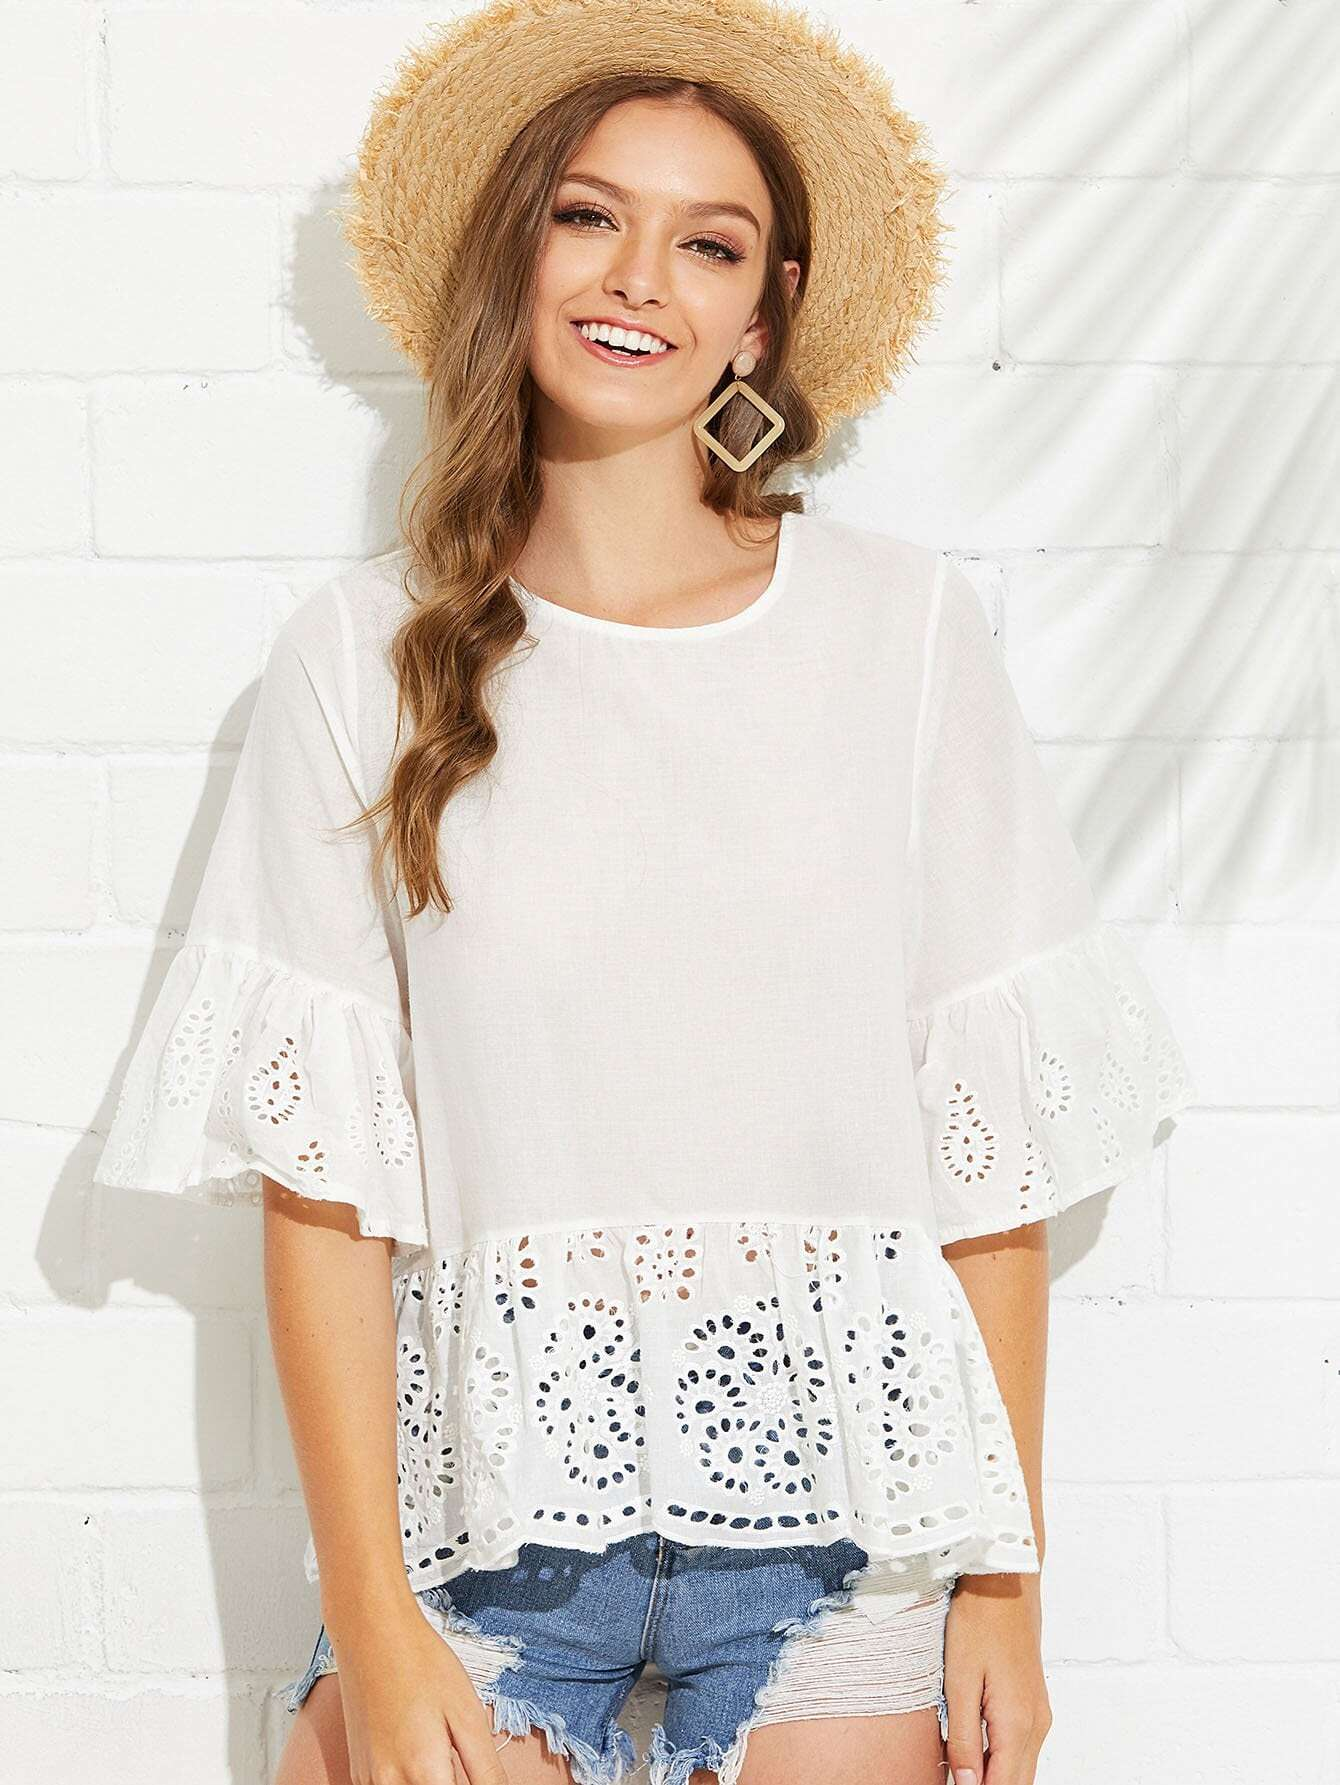 Bell Sleeve Eyelet Embroidered Ruffle Hem Top eyelet embroidery ruffle hem dress